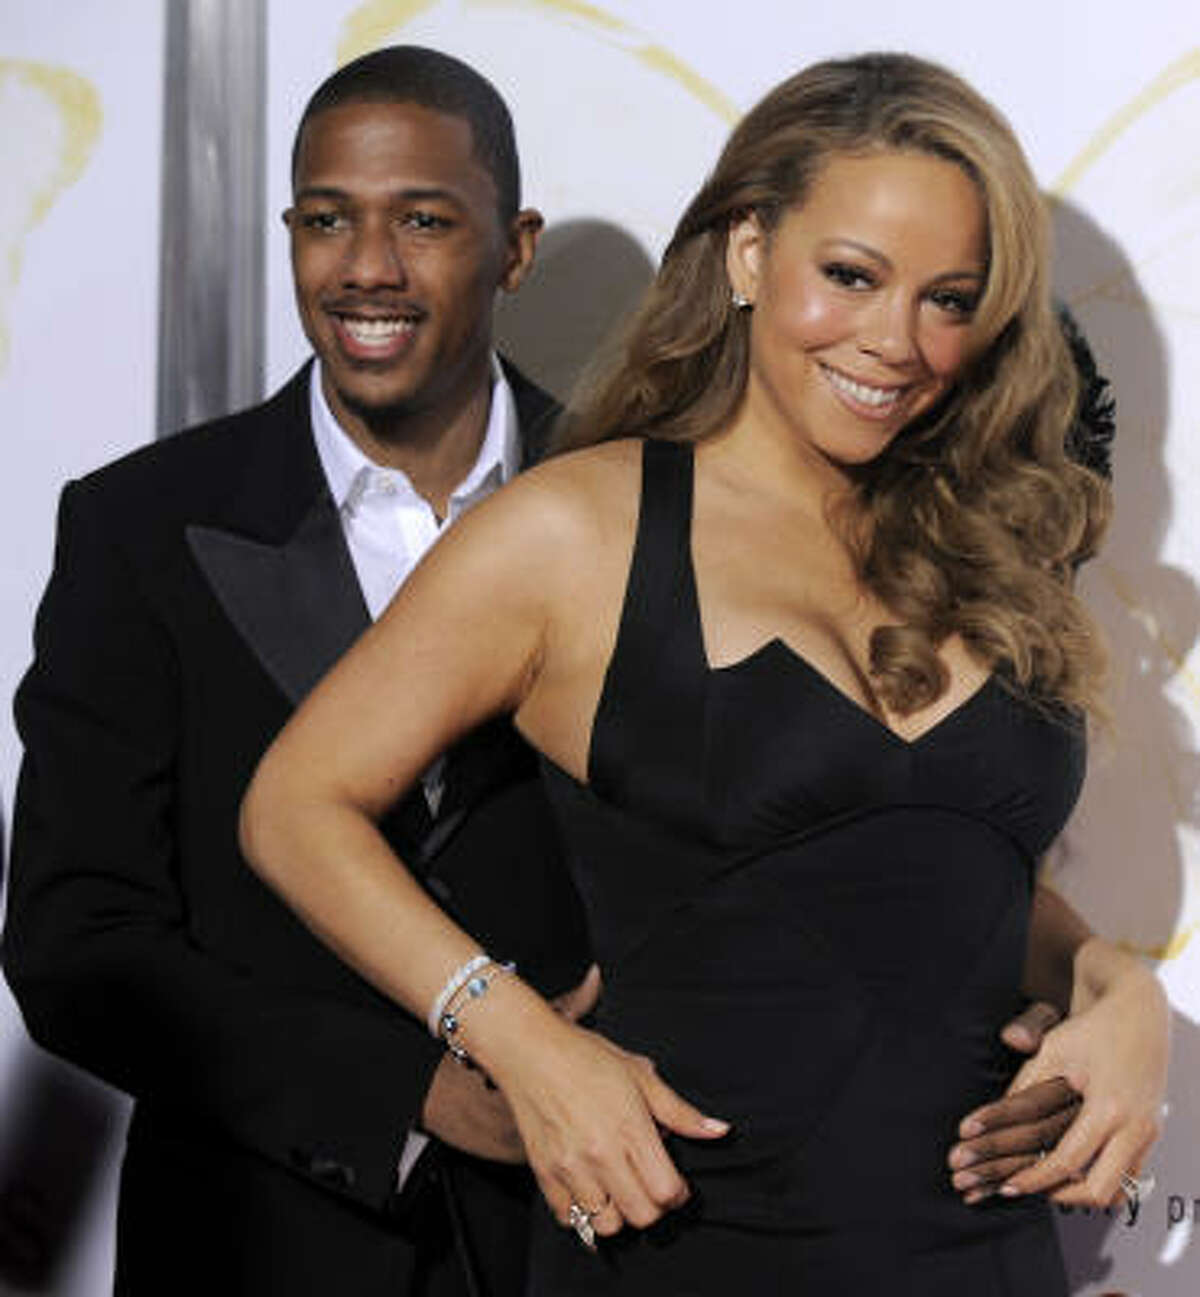 Mariah Carey, 41, said of her relationship with hubby Nick Cannon, 29,